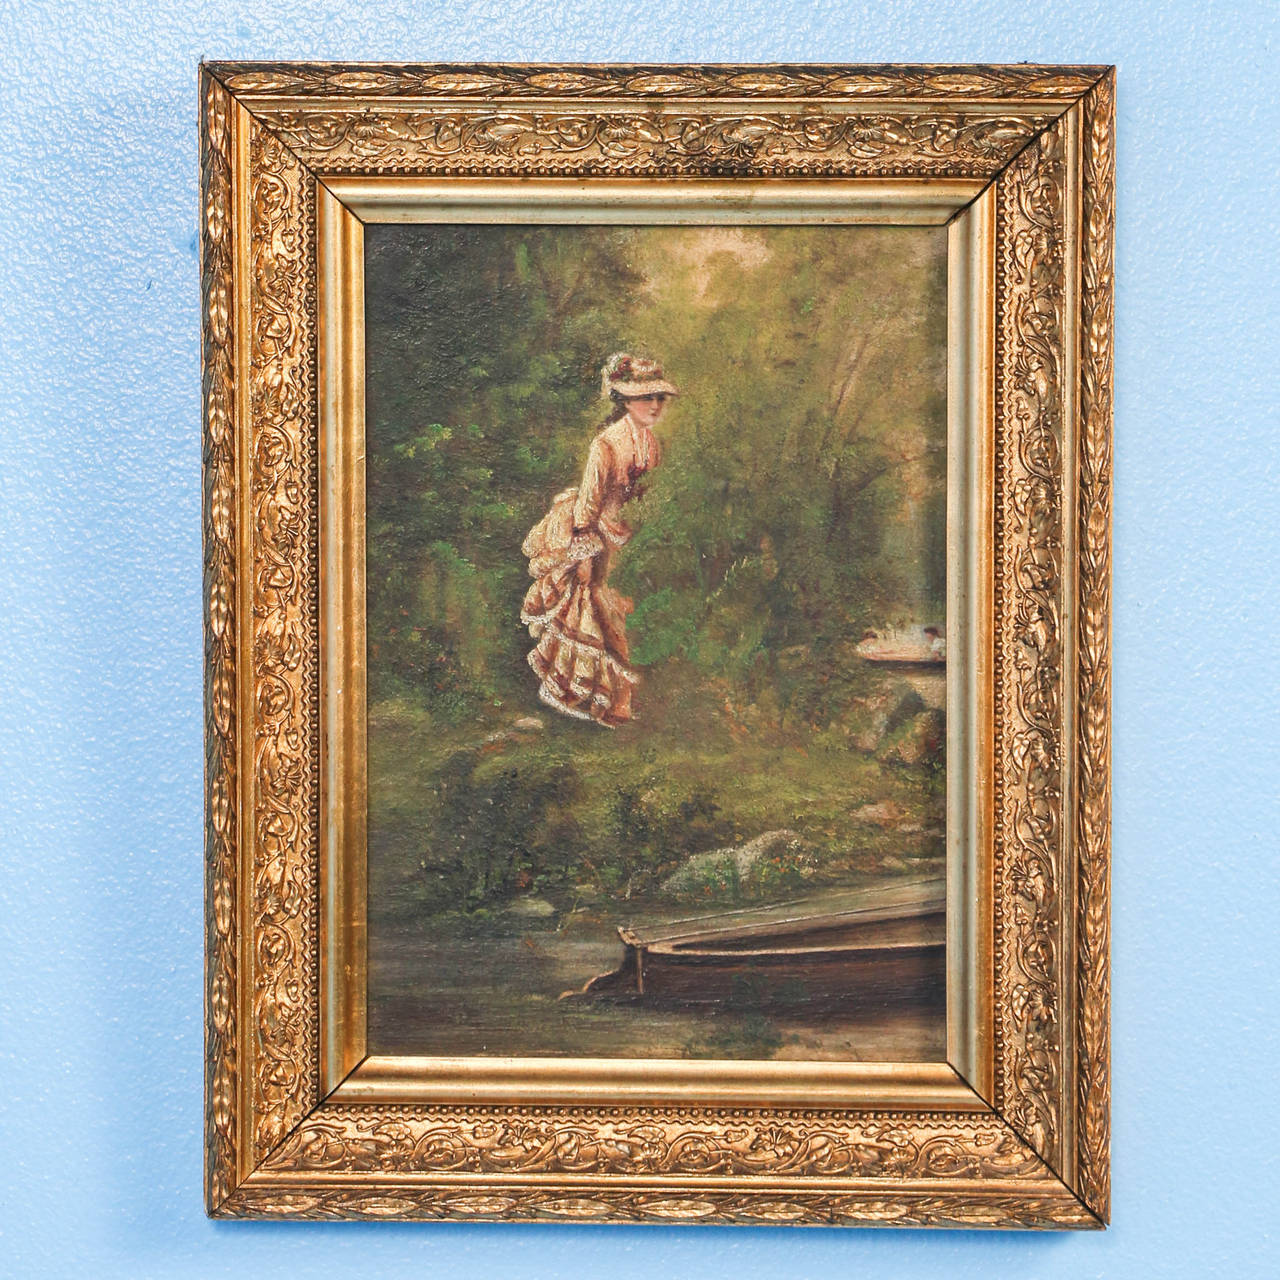 This delightful pair of oil on canvas paintings are being sold as a set. While the romantic couple are in the boat, another woman is spying upon them from behind the green shrubbery on the shore. They are both by the same unknown artist.